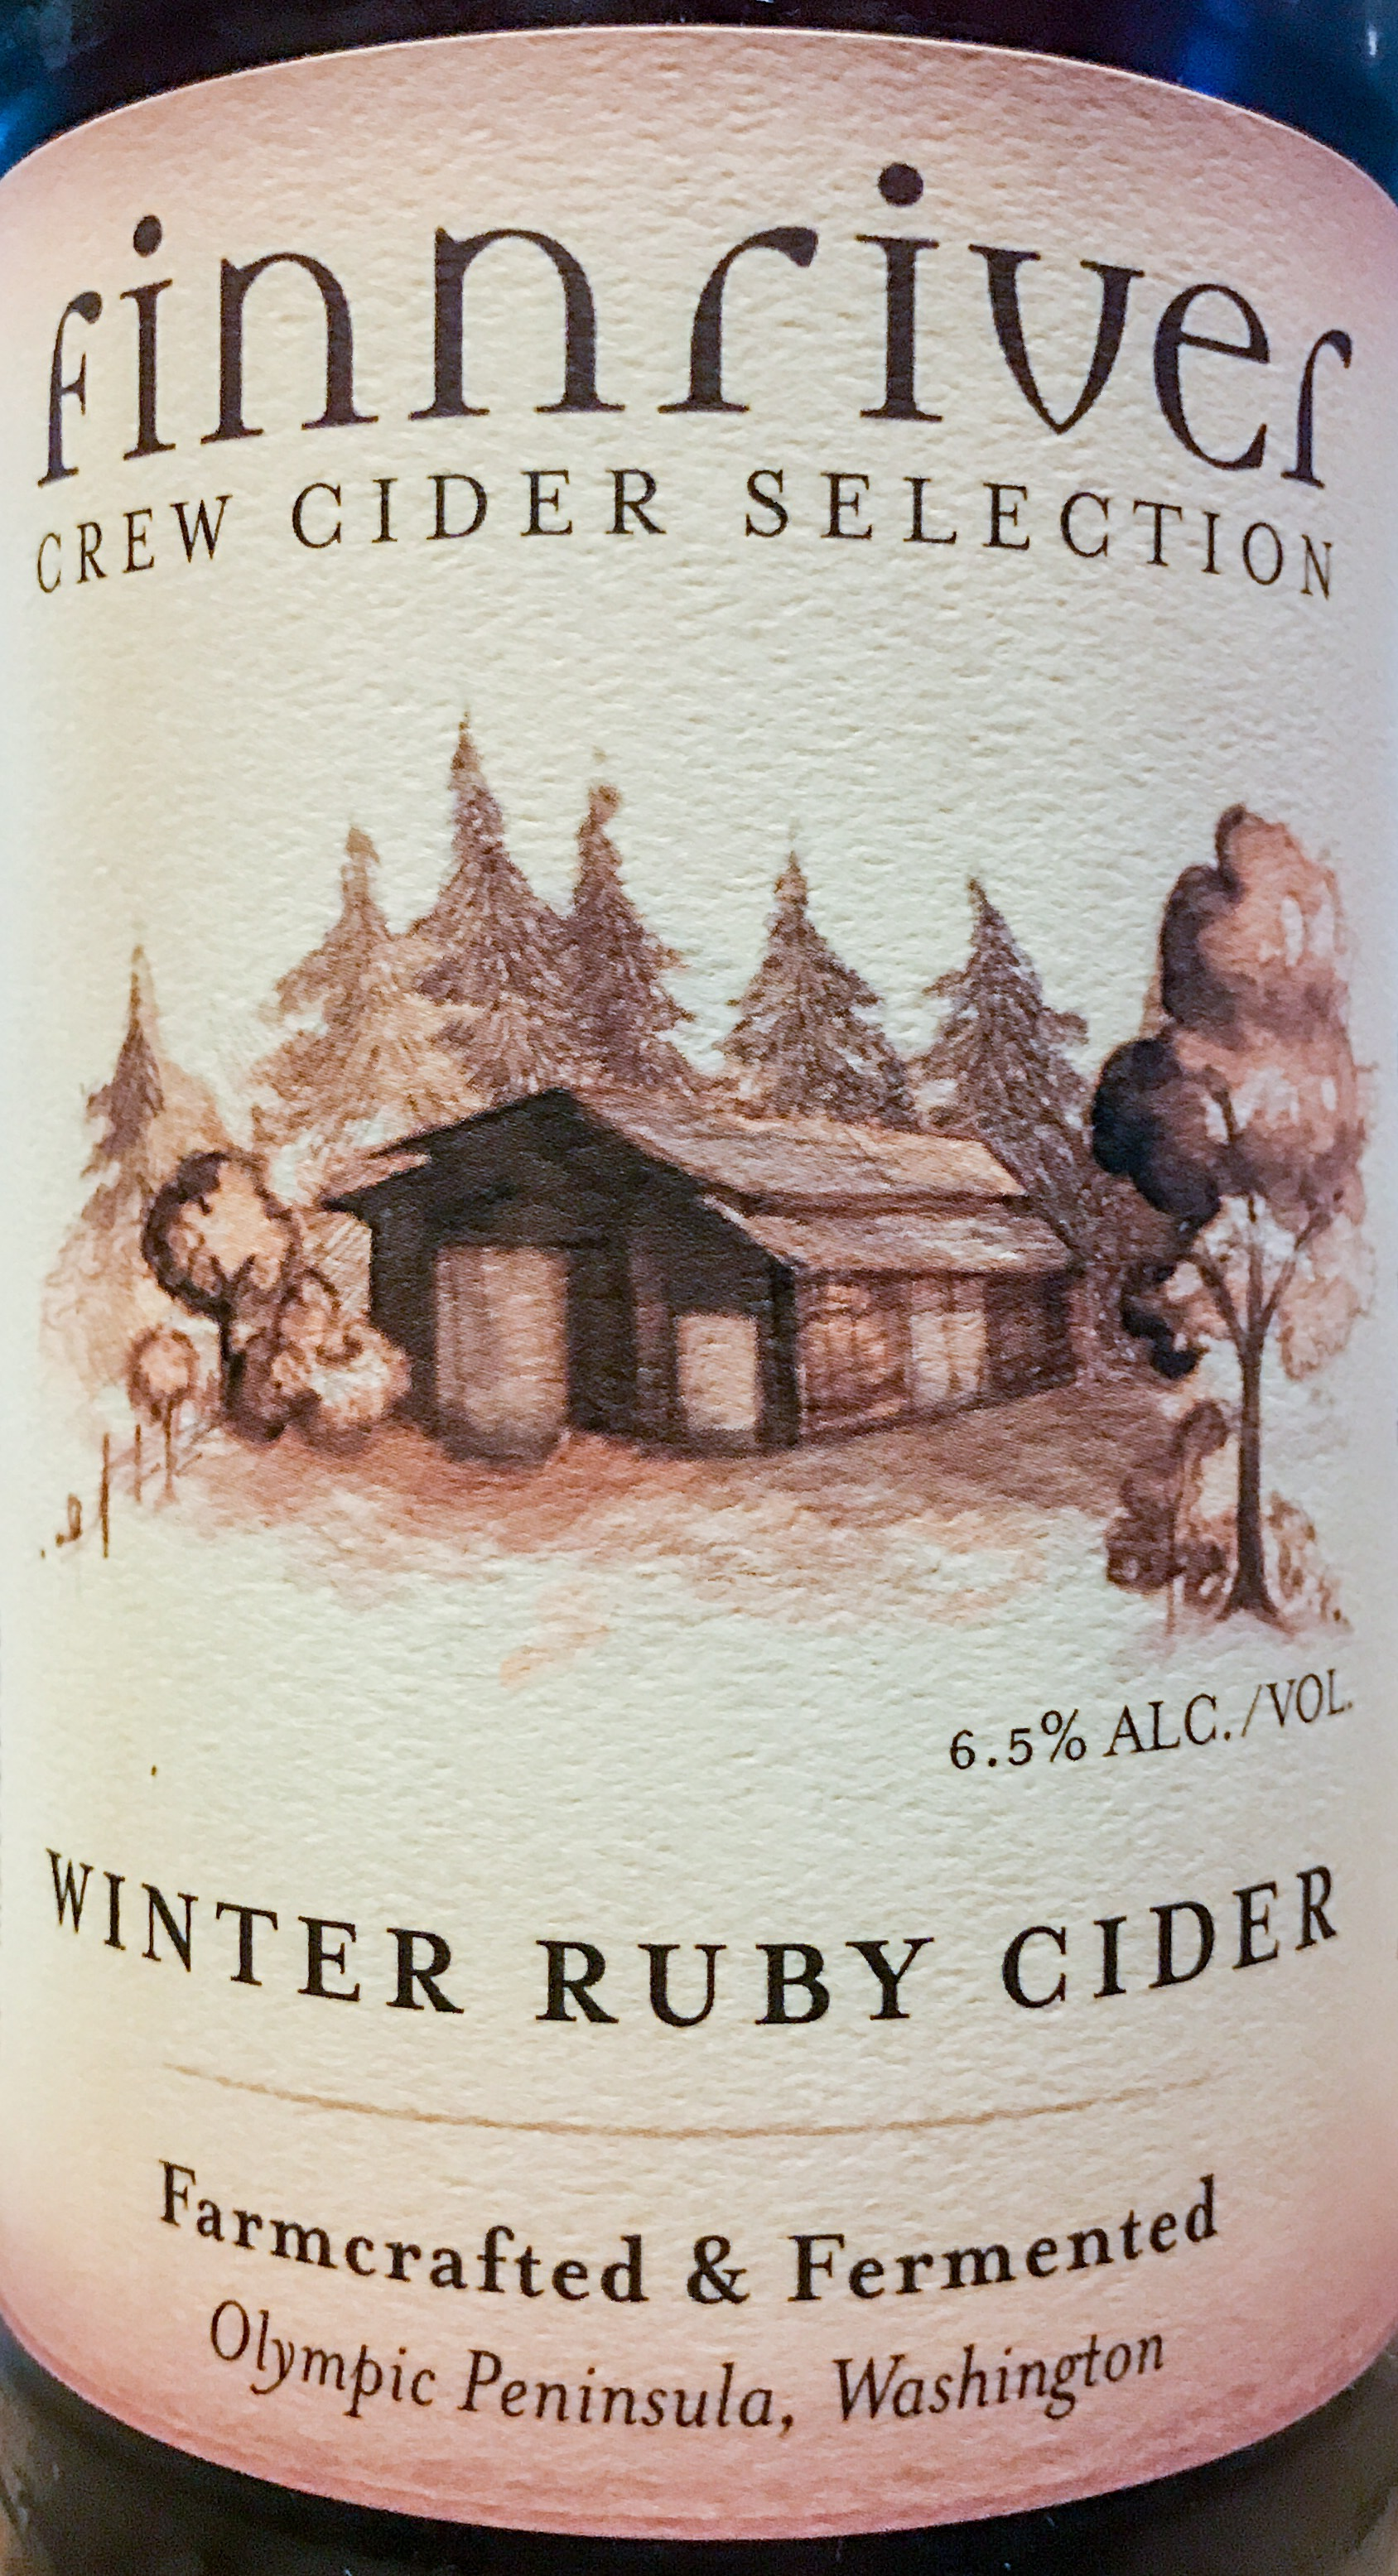 Crew Cider Selection - Winter Ruby Cider